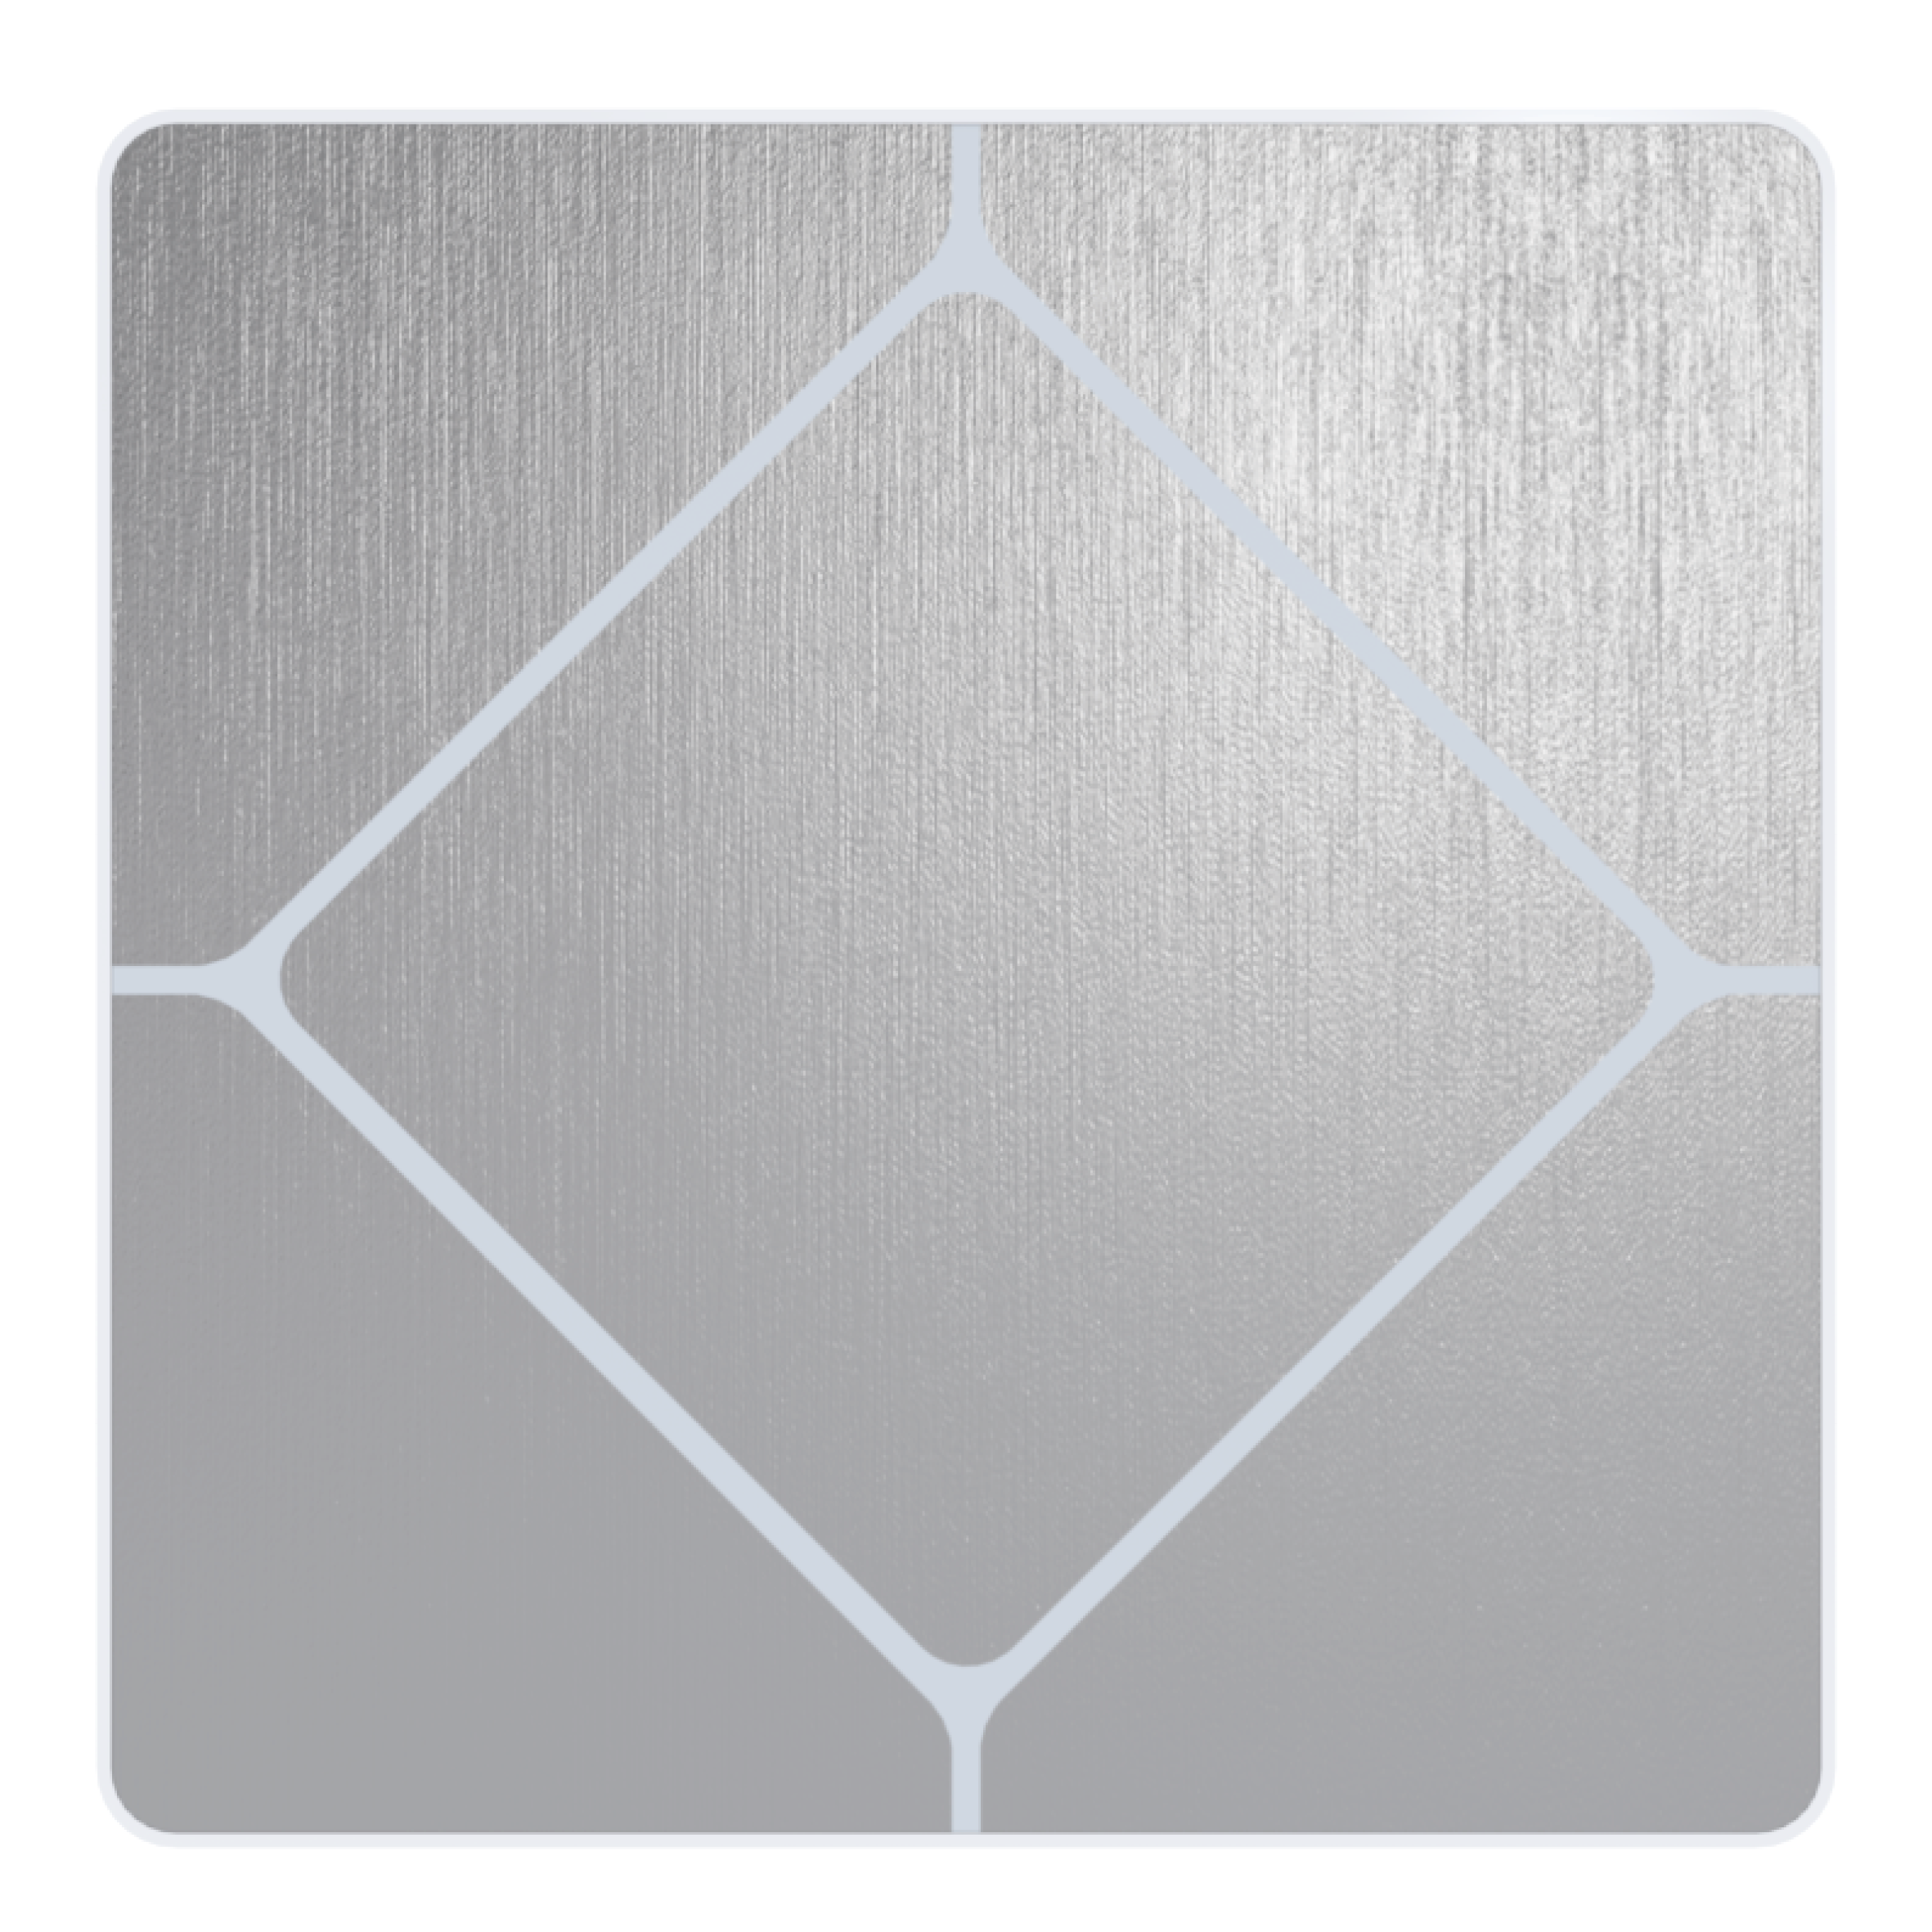 Faradite TAP-1 Brushed Stainless Steel Switch for Crestron